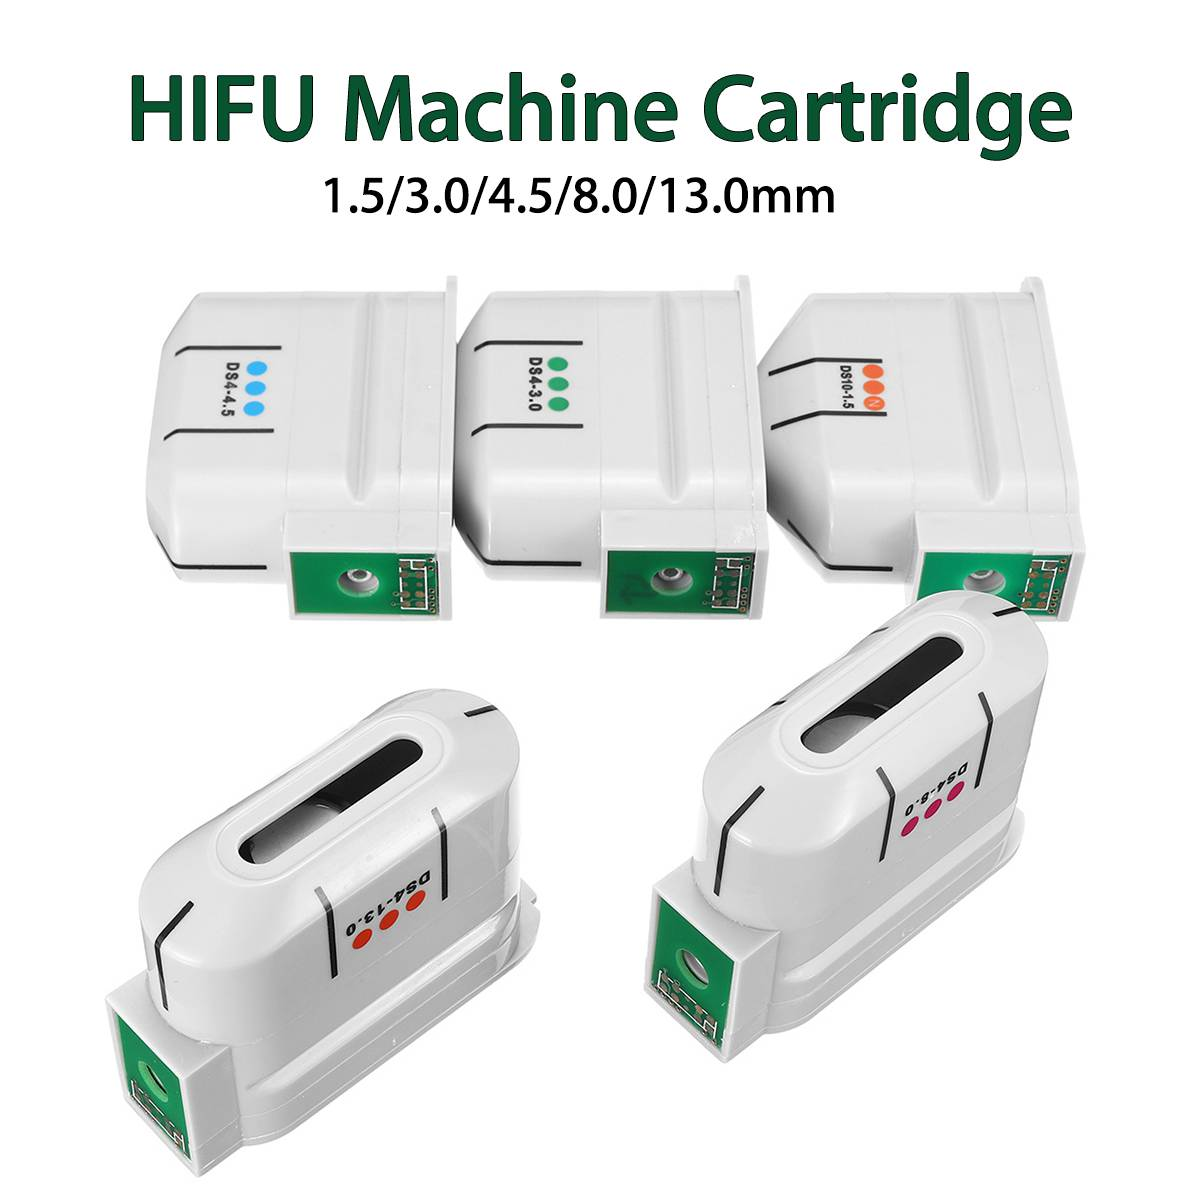 2019 Ulformula1 HIFU Ultrasound Face Machine Anti Aging 10000 shots HIFU Transducer /Exchangeable HIFU Facial Body Cartridge2019 Ulformula1 HIFU Ultrasound Face Machine Anti Aging 10000 shots HIFU Transducer /Exchangeable HIFU Facial Body Cartridge